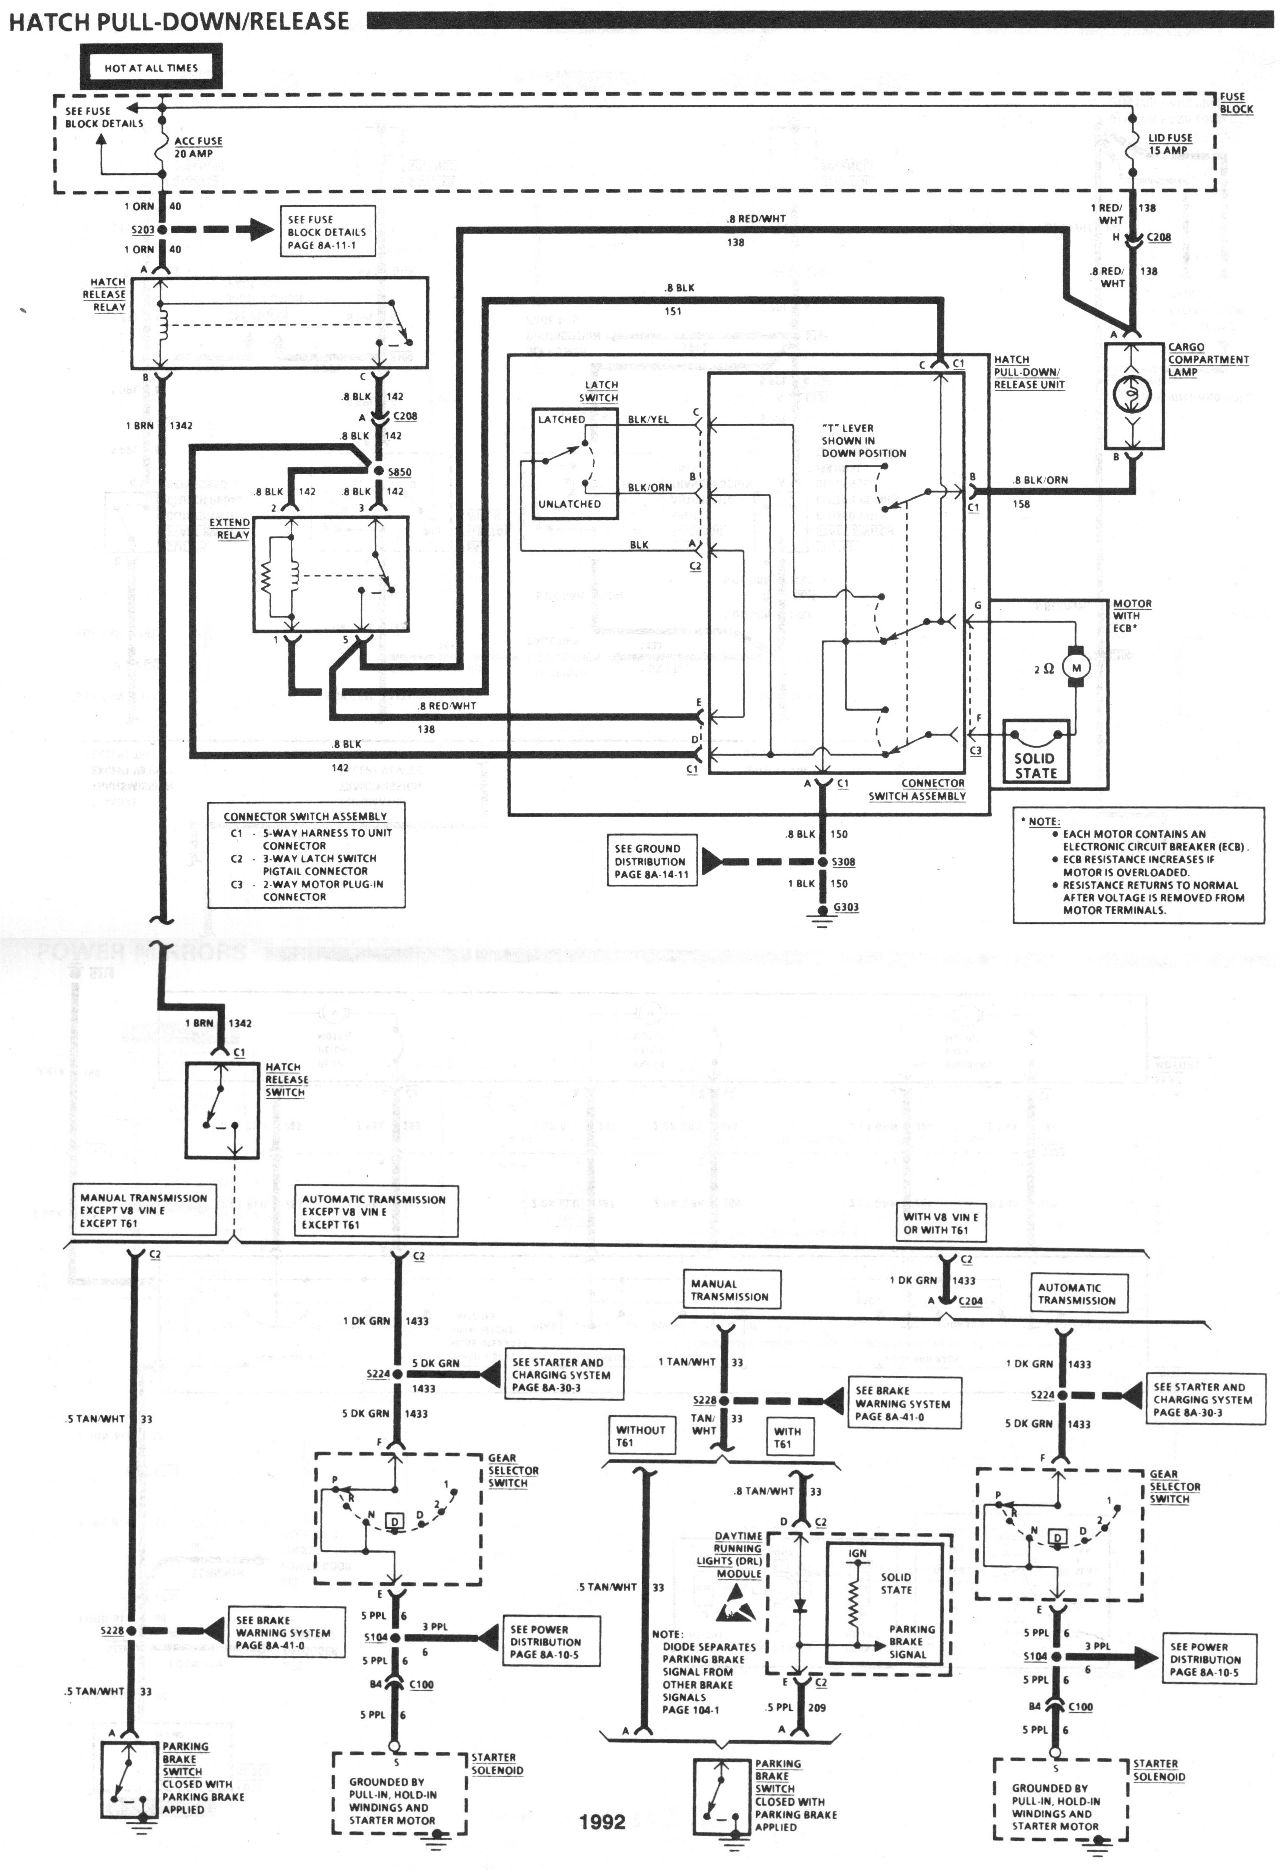 00 Camaro Starter Relay Wiring Diagram